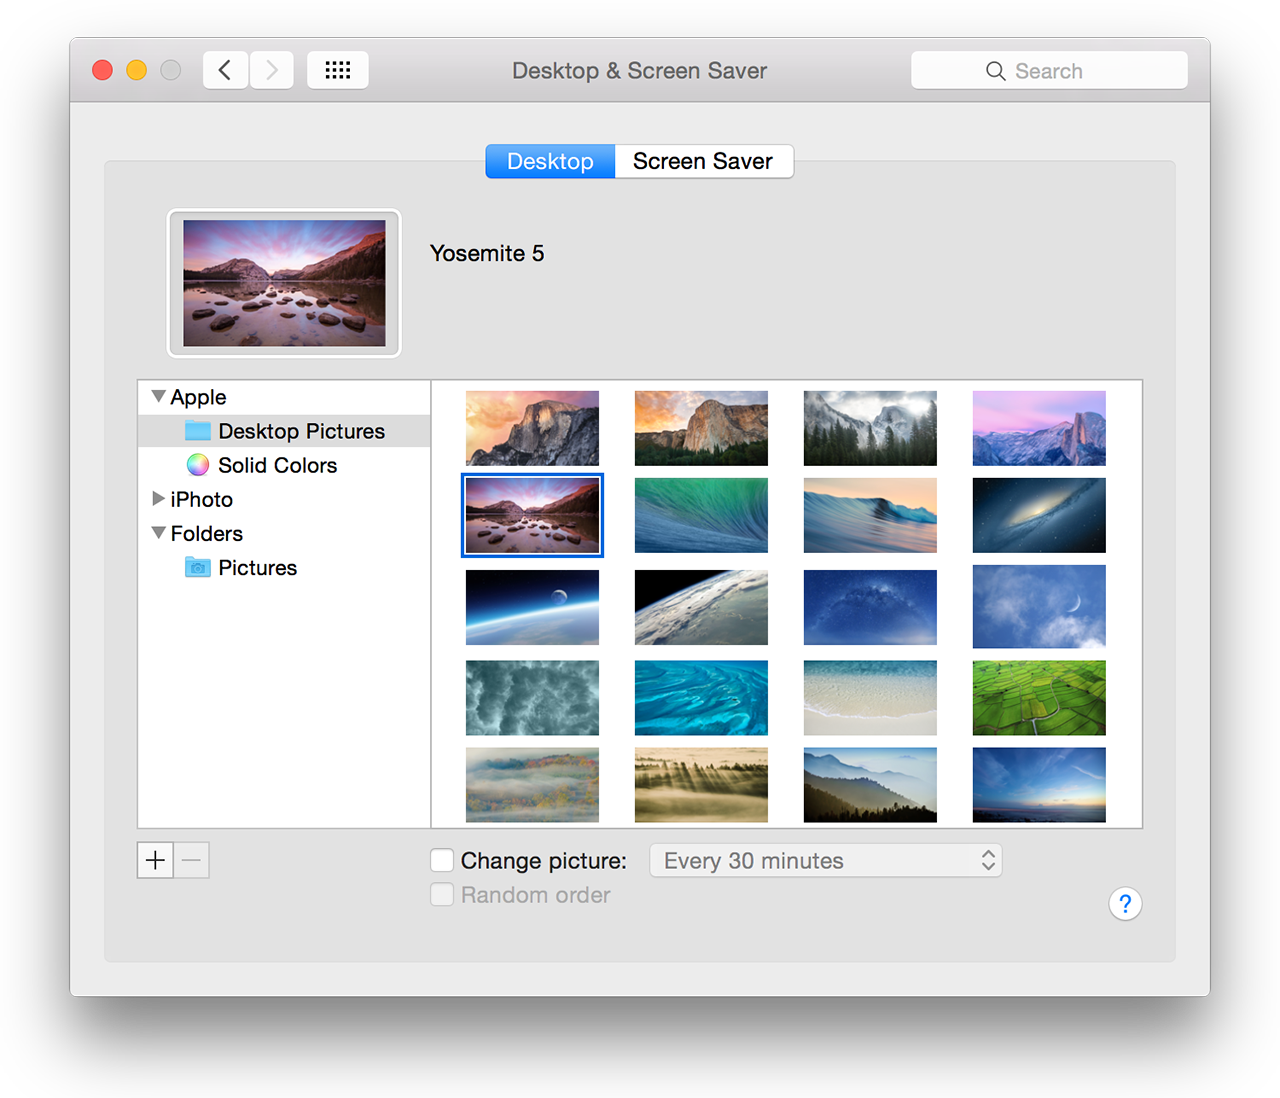 New pictures of Yosemite National Park, but no more translucent menu bar toggle.